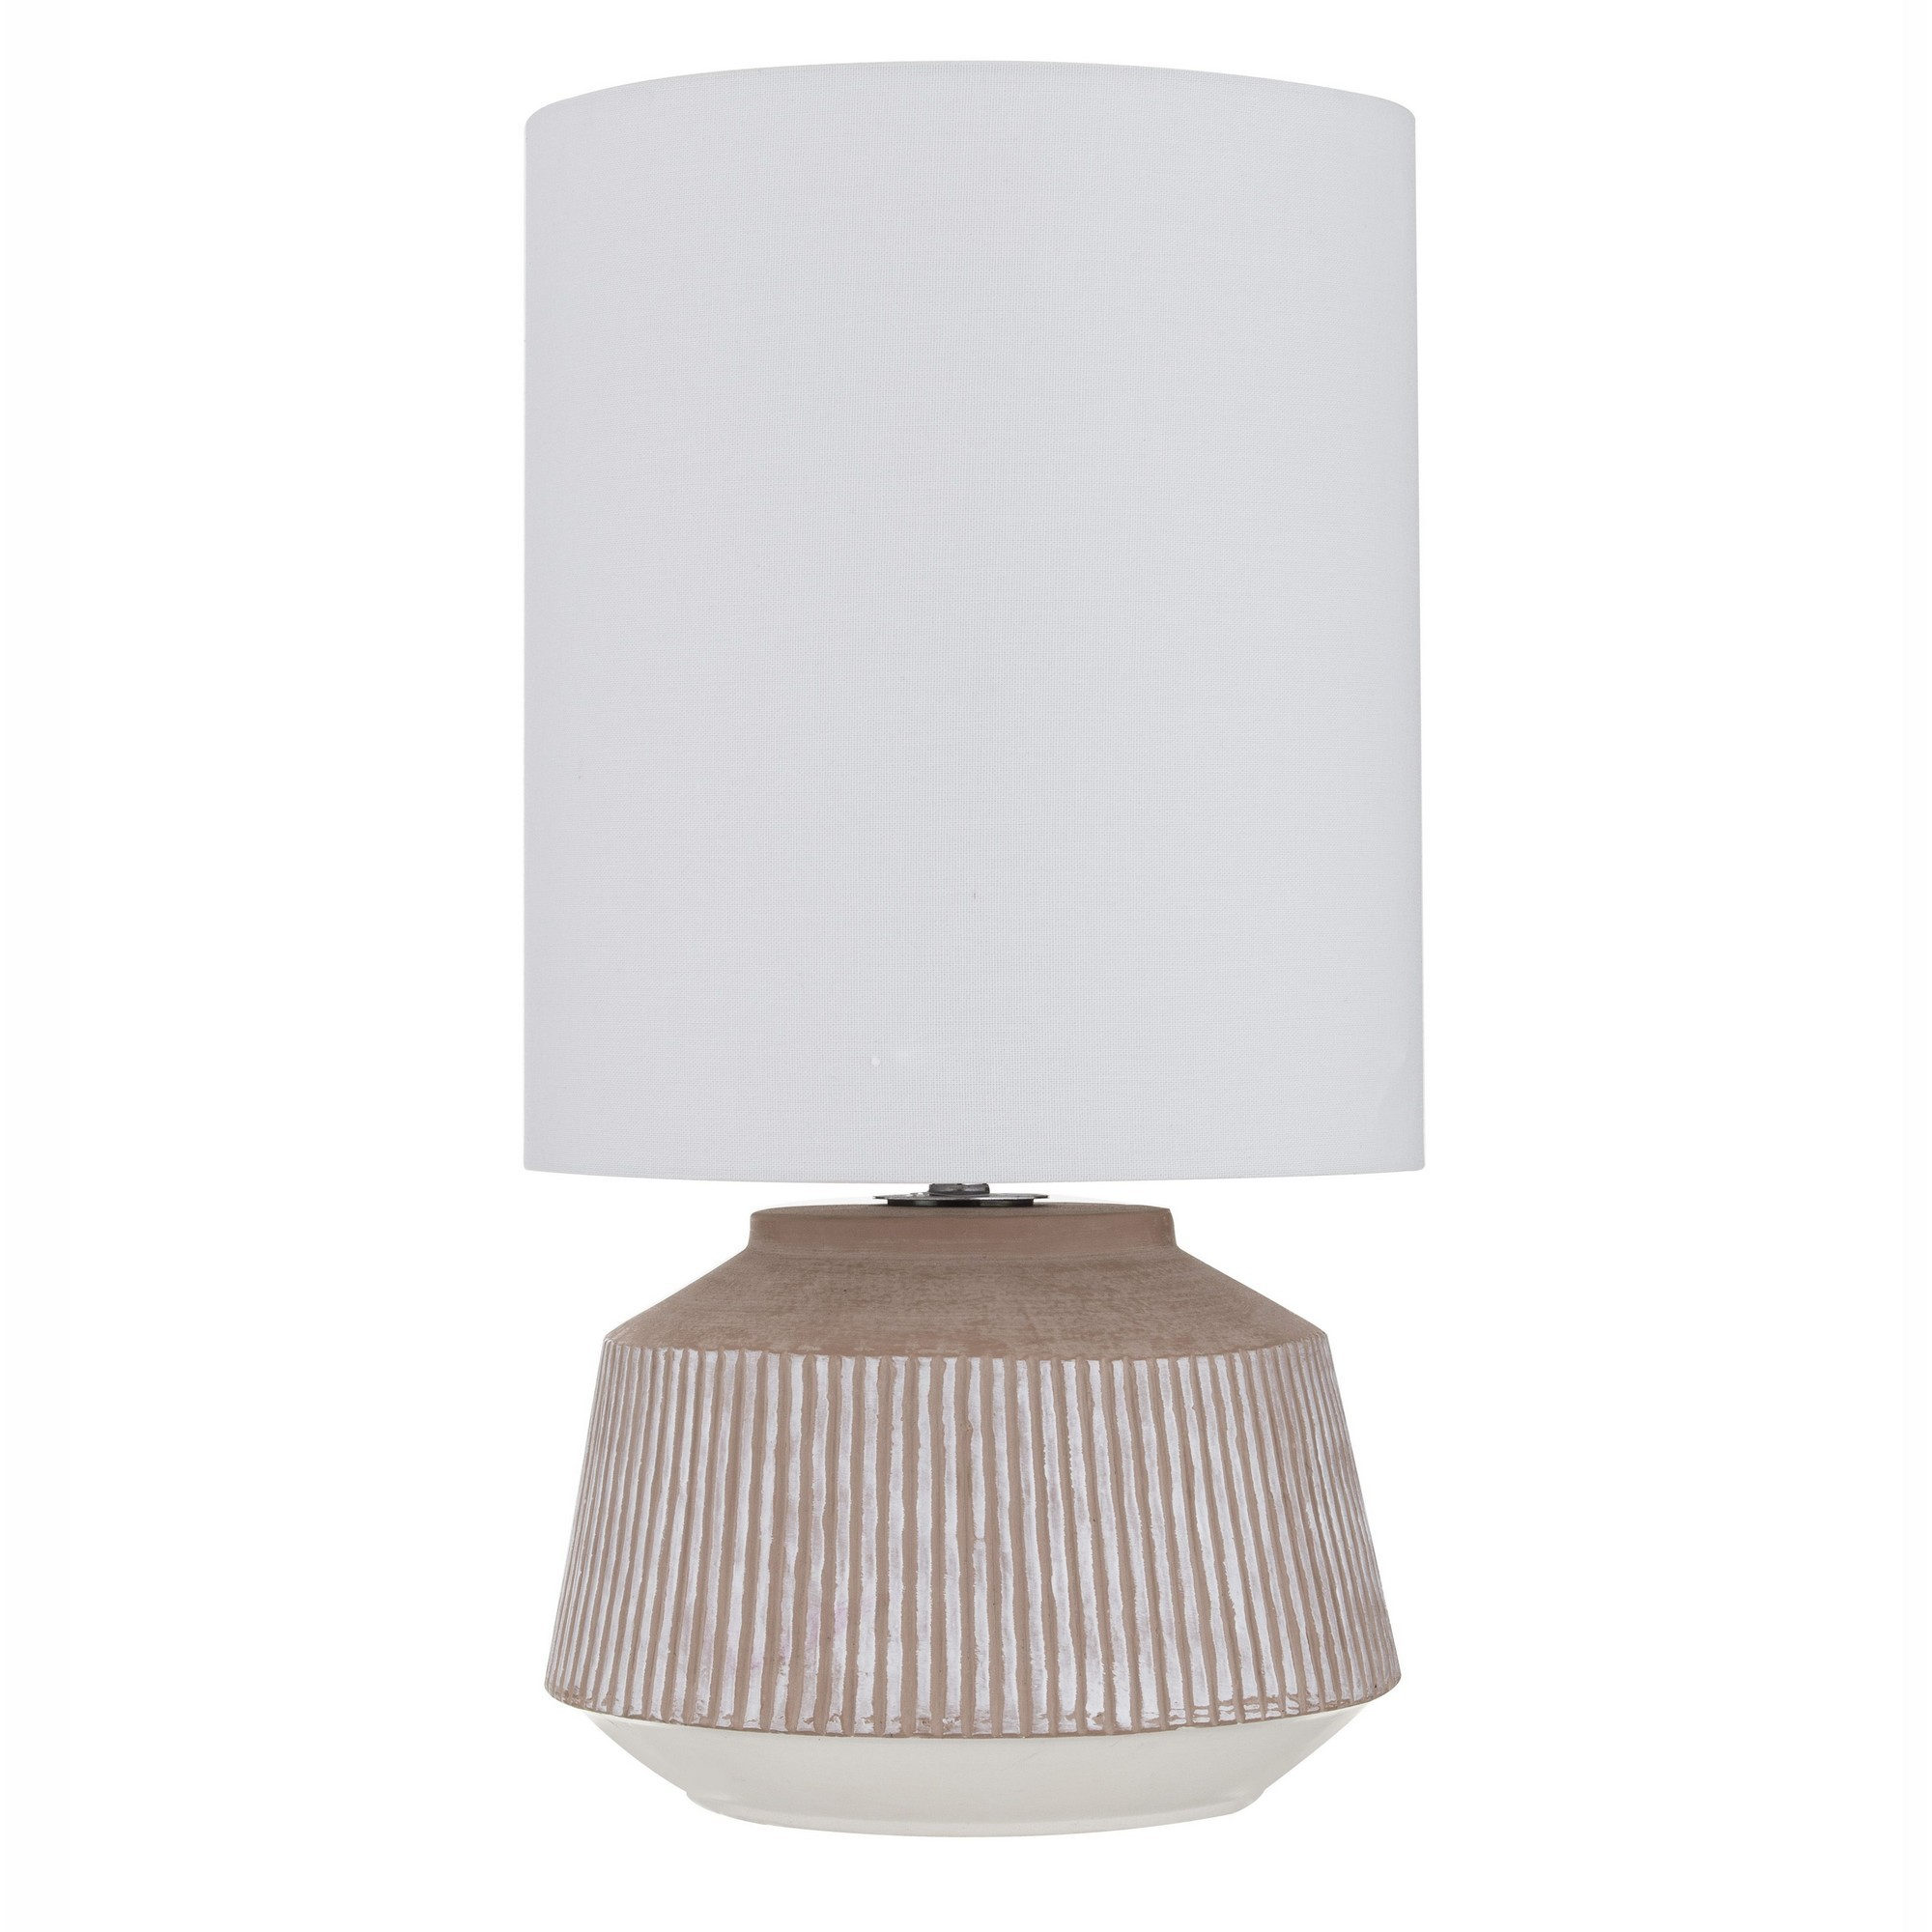 Acland Ceramic Base Table Lamp